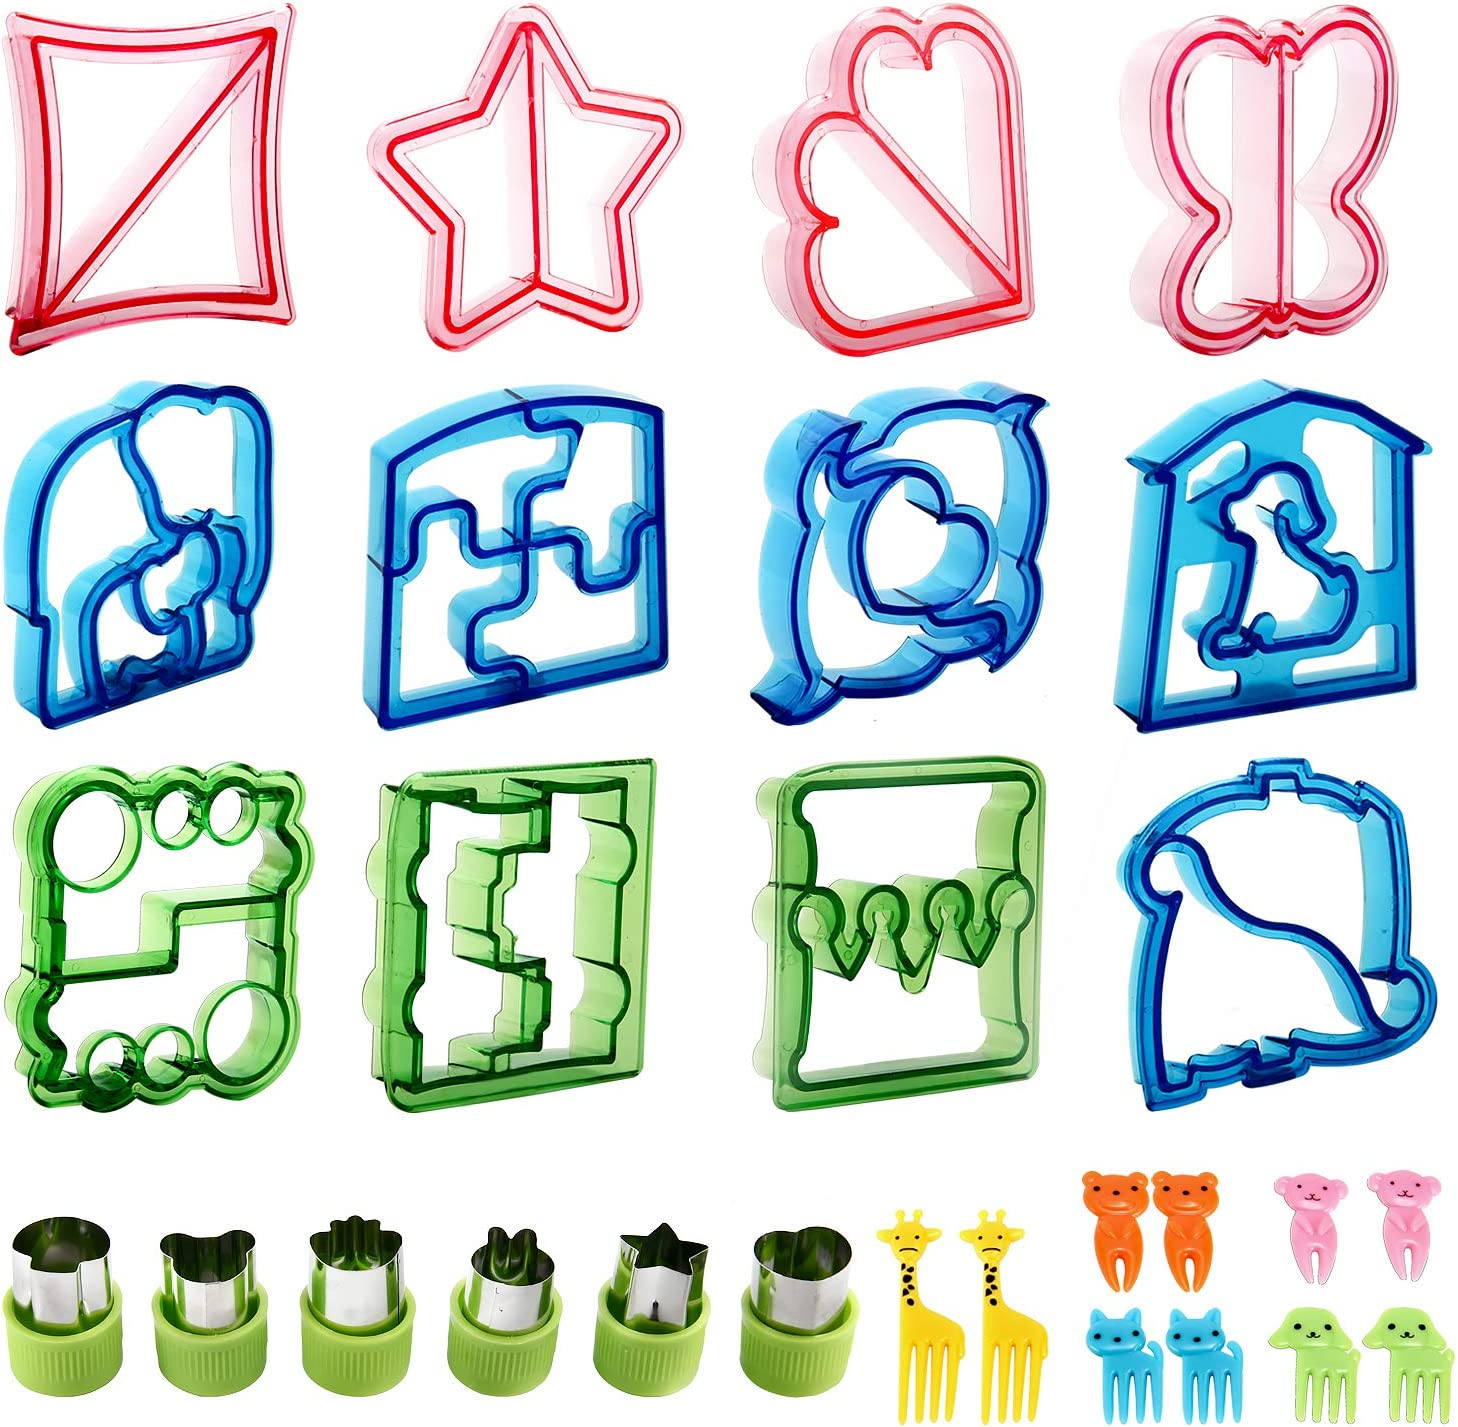 Sandwich Cutters for kids,RUCKAE 28pcs Sandwich Cutter Great For Toddler Lunch Box and Containers,includes Fruit and Vegetable cookie cutters,Food Pick forks